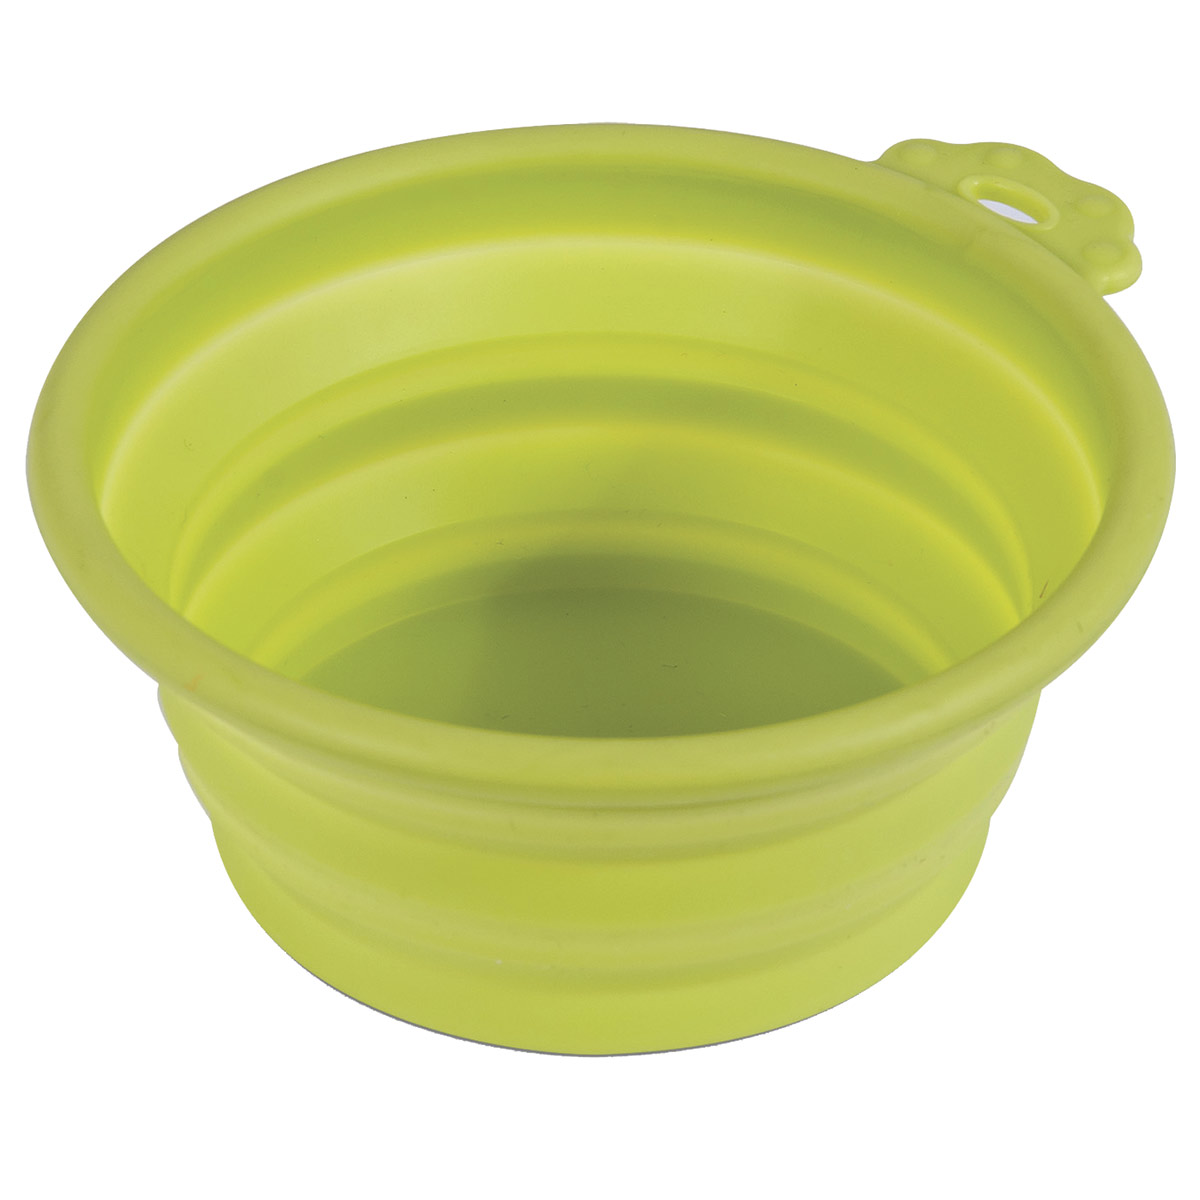 Lime Green Petmate 3 Cup Collapsible Silicone Travel Bowl for Dogs